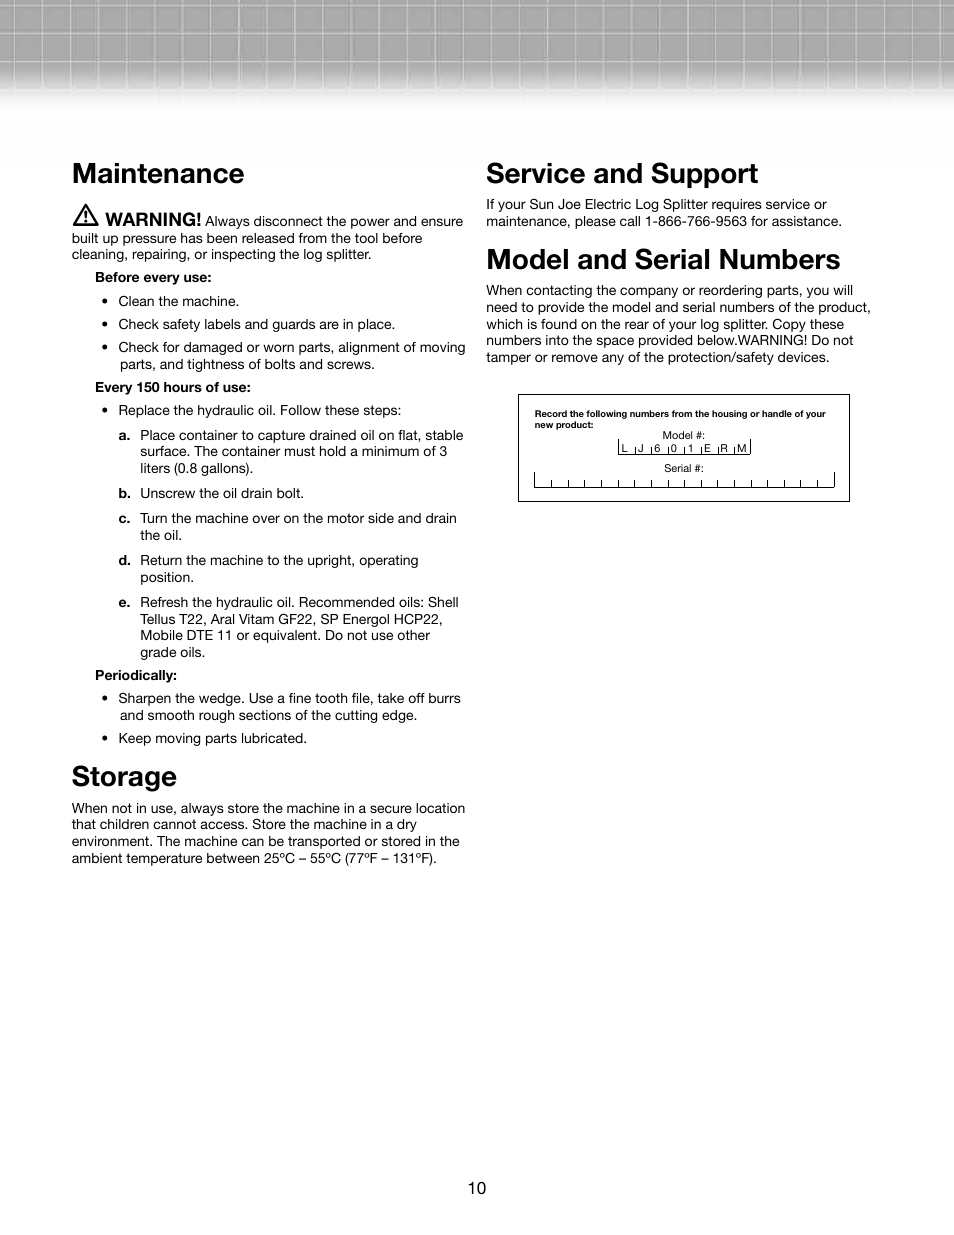 Maintenance M Storage Service And Support Snow Joe Lj601e Rm Logger 15 Amp 5 Ton Electric Log Splitter User Manual Page 10 12